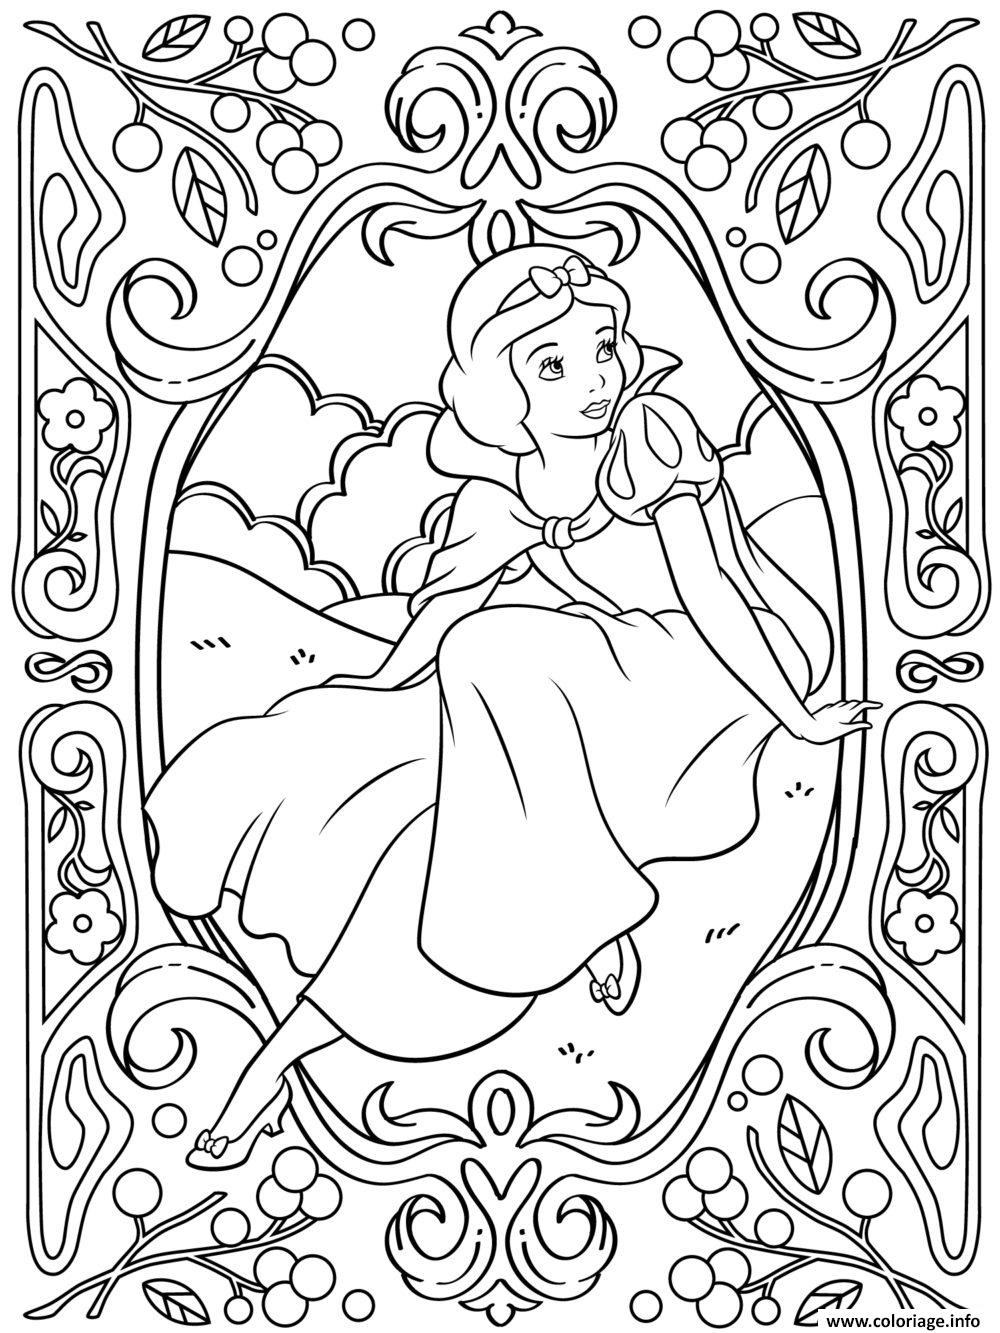 disney coloring pages frozen - mandala disney princesse blanche neige coloriage dessin